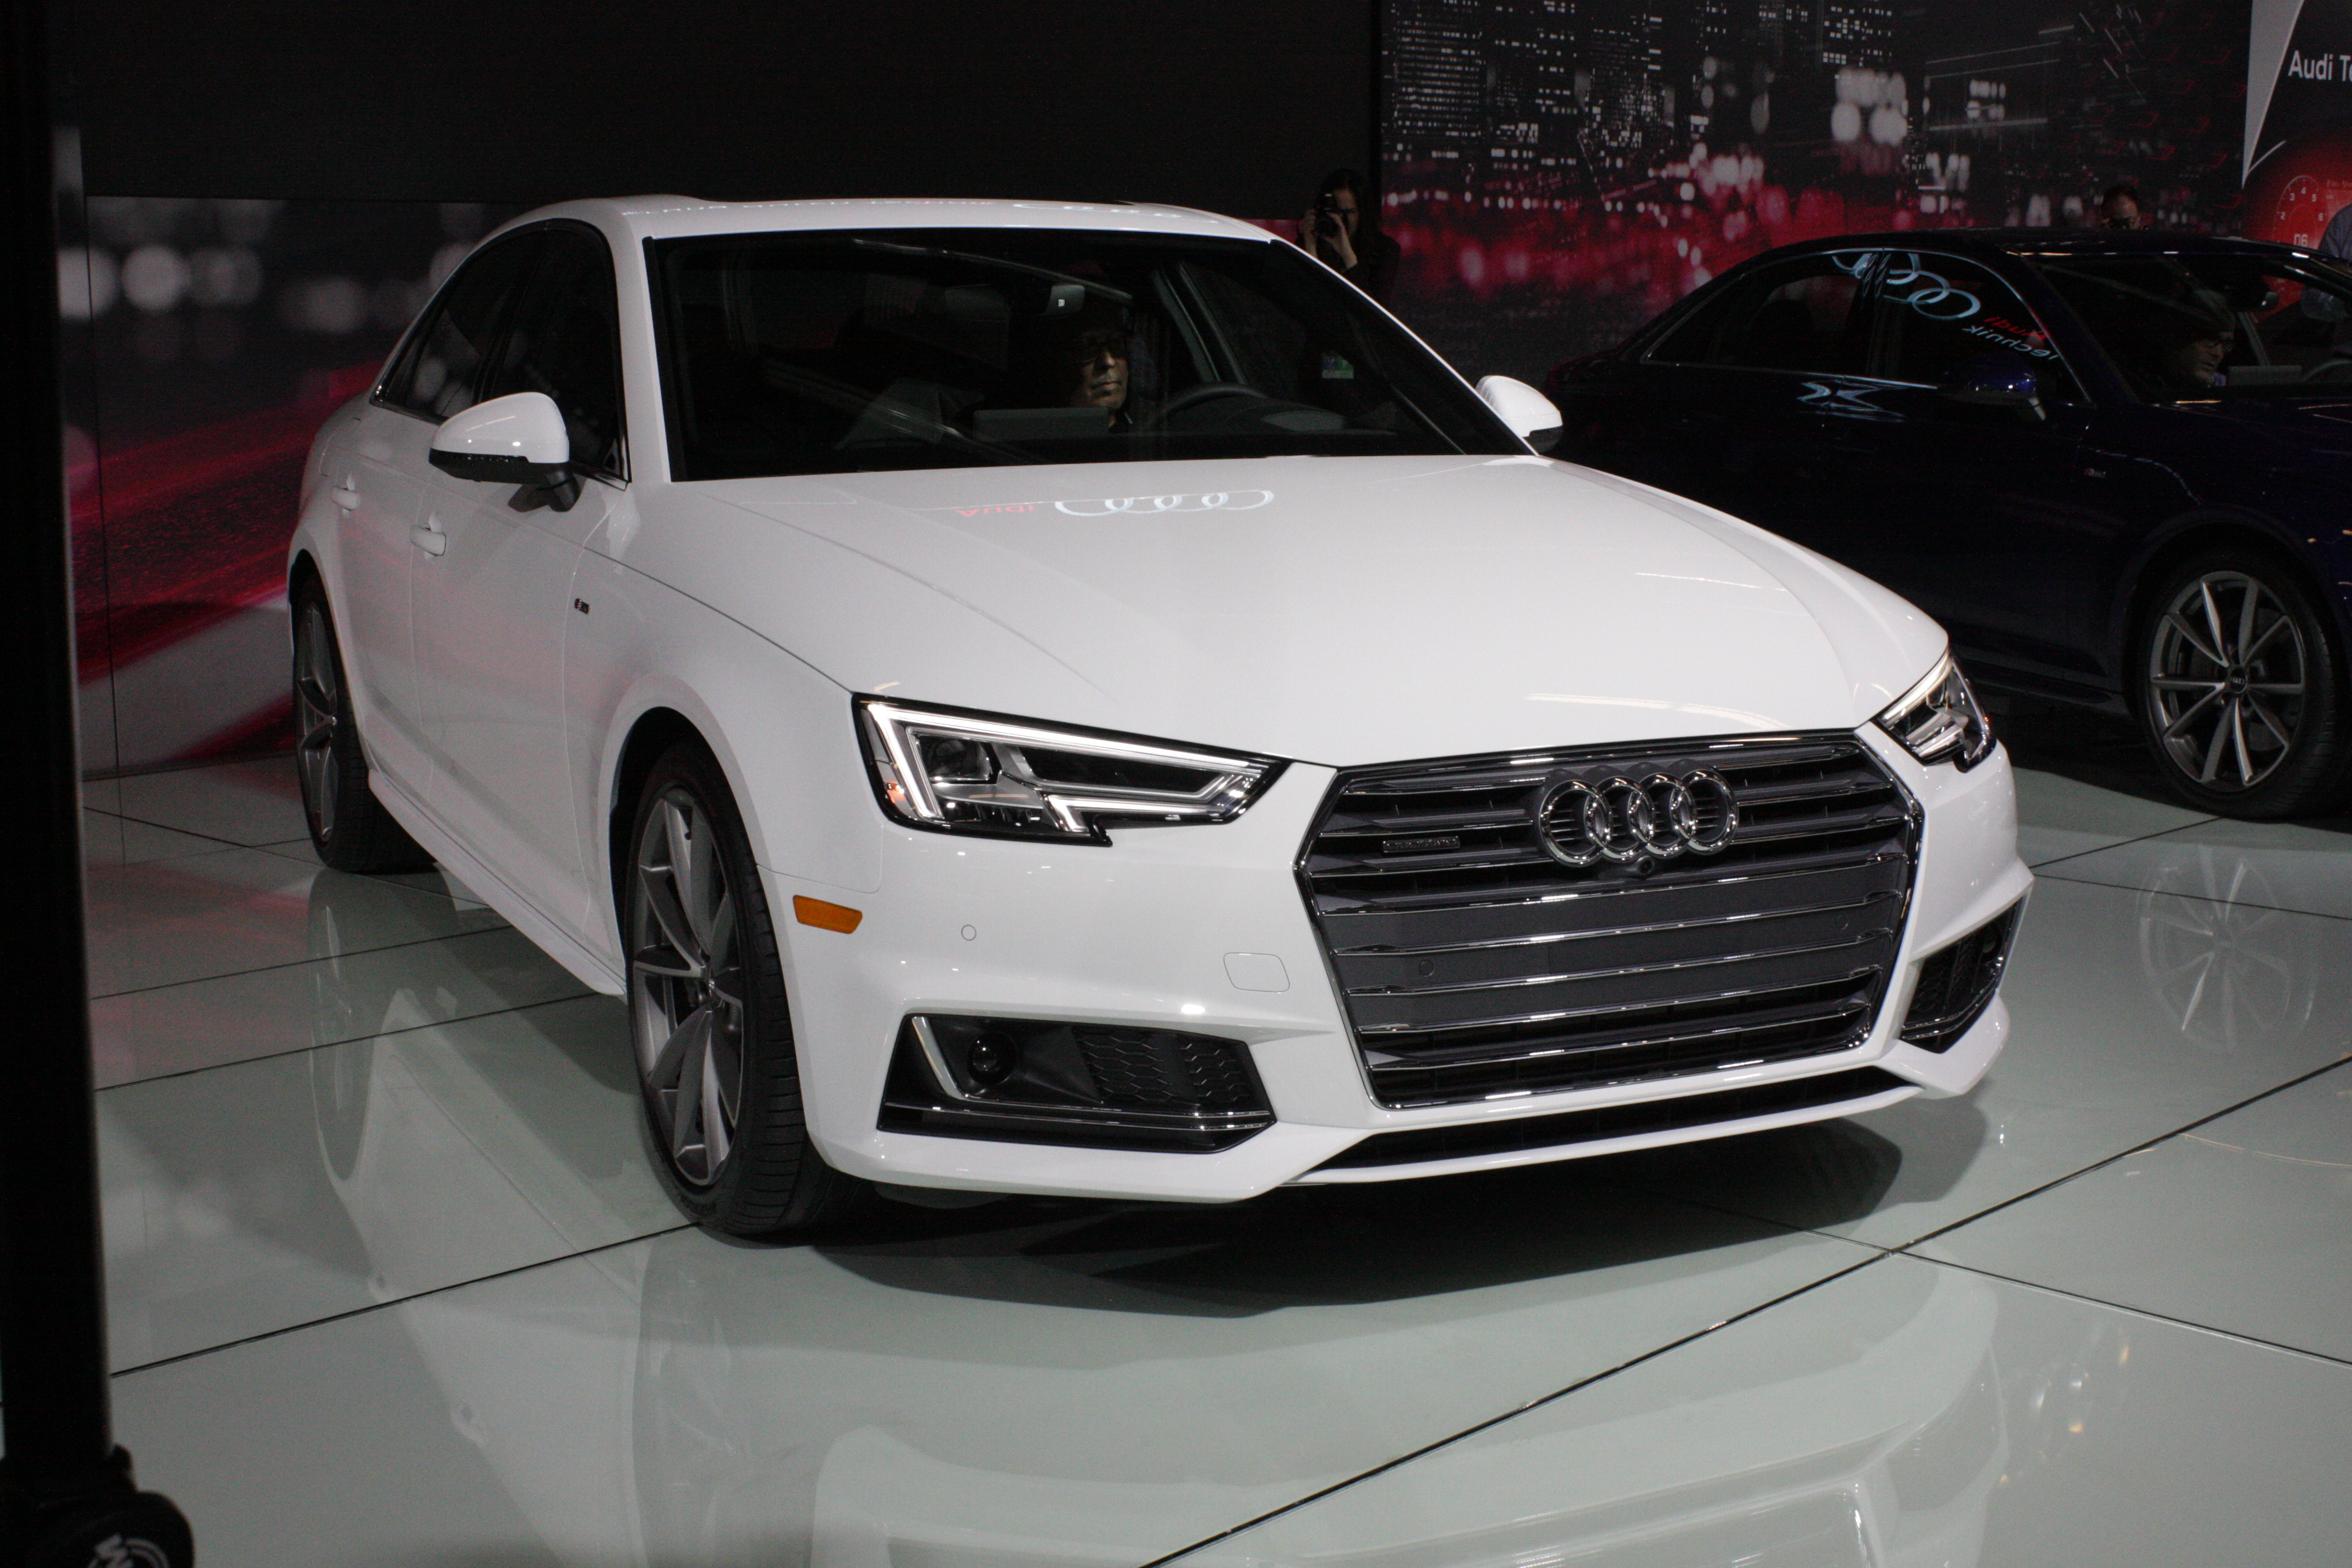 The latest generation of Audi's A4 compact sports sharp new styling inspired by the brand's recent concept cars.